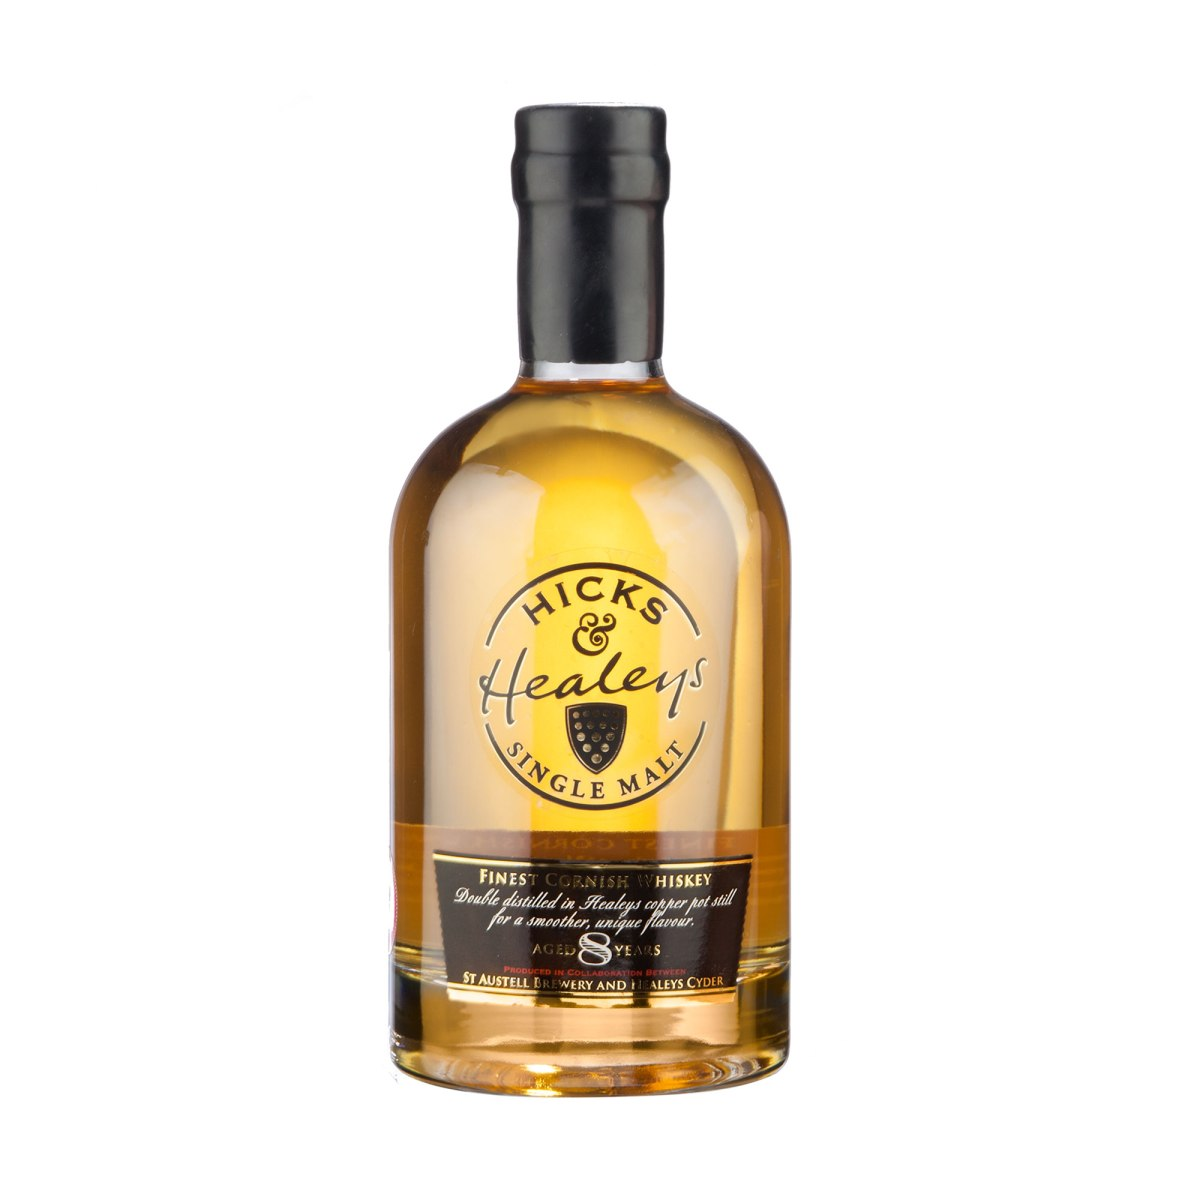 Hicks & Healey 8 Year Old Cornish Single Malt (42.5%, OB, 2016)